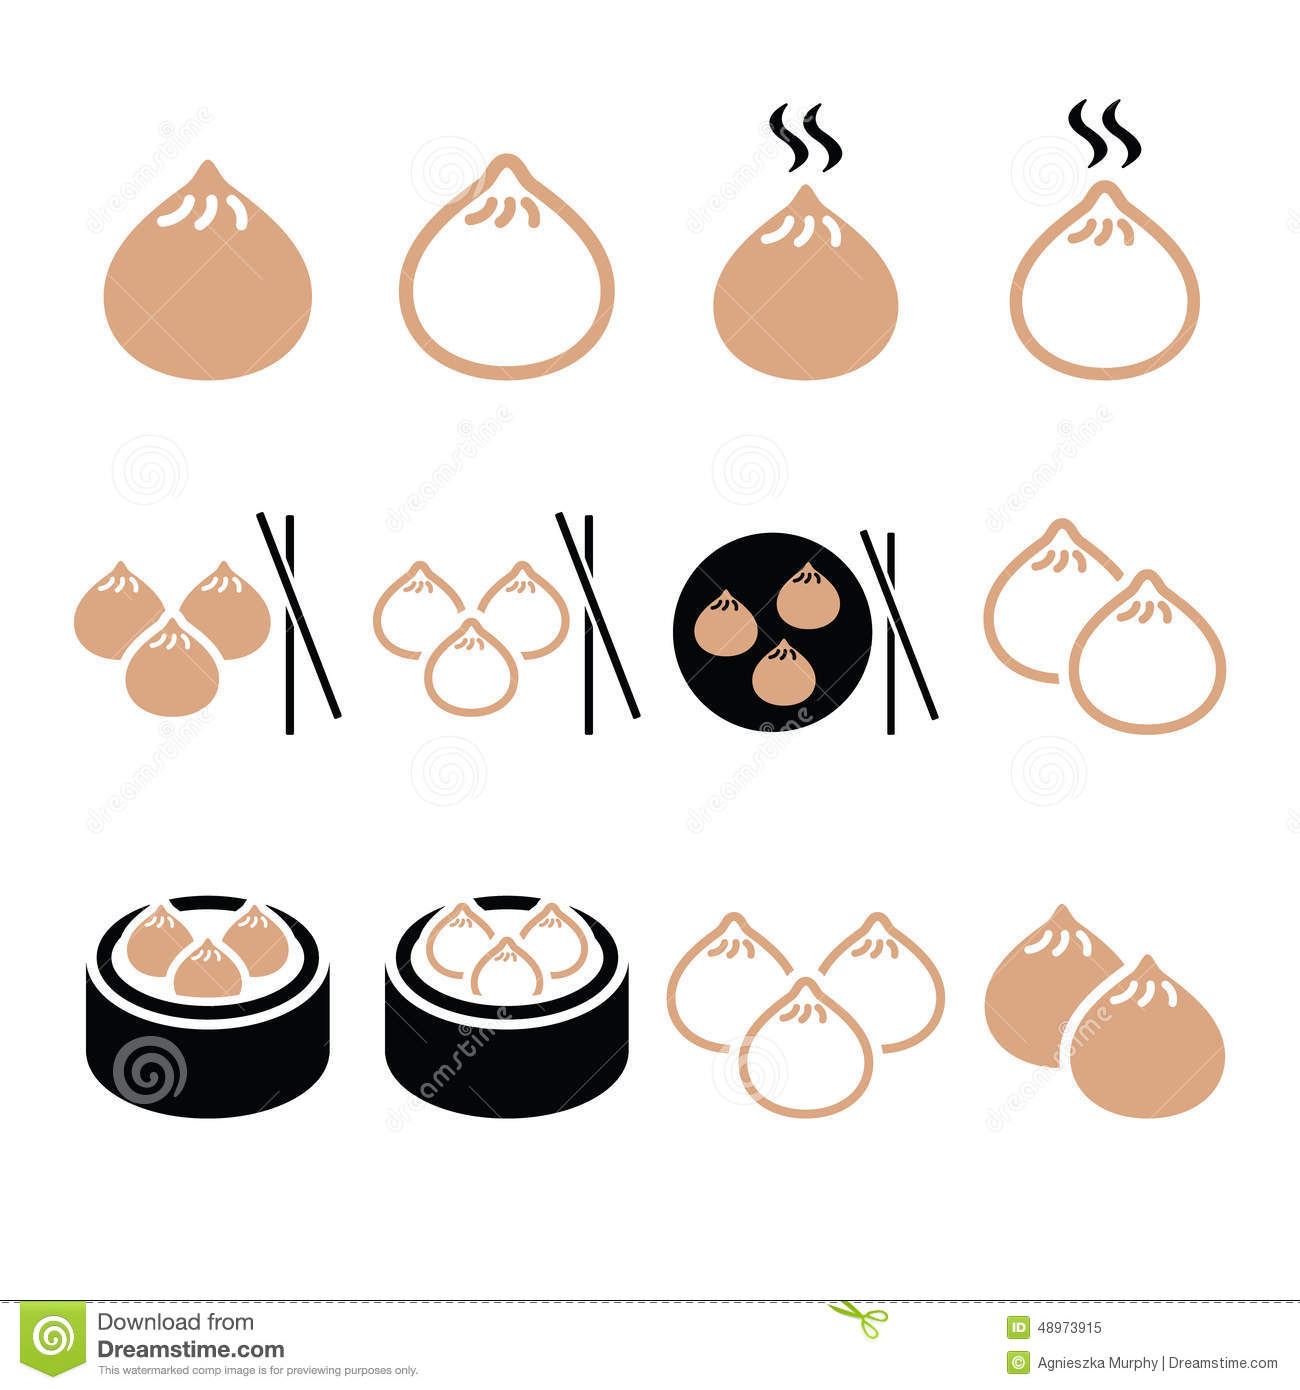 how to use a bamboo steamer to cook dumplings